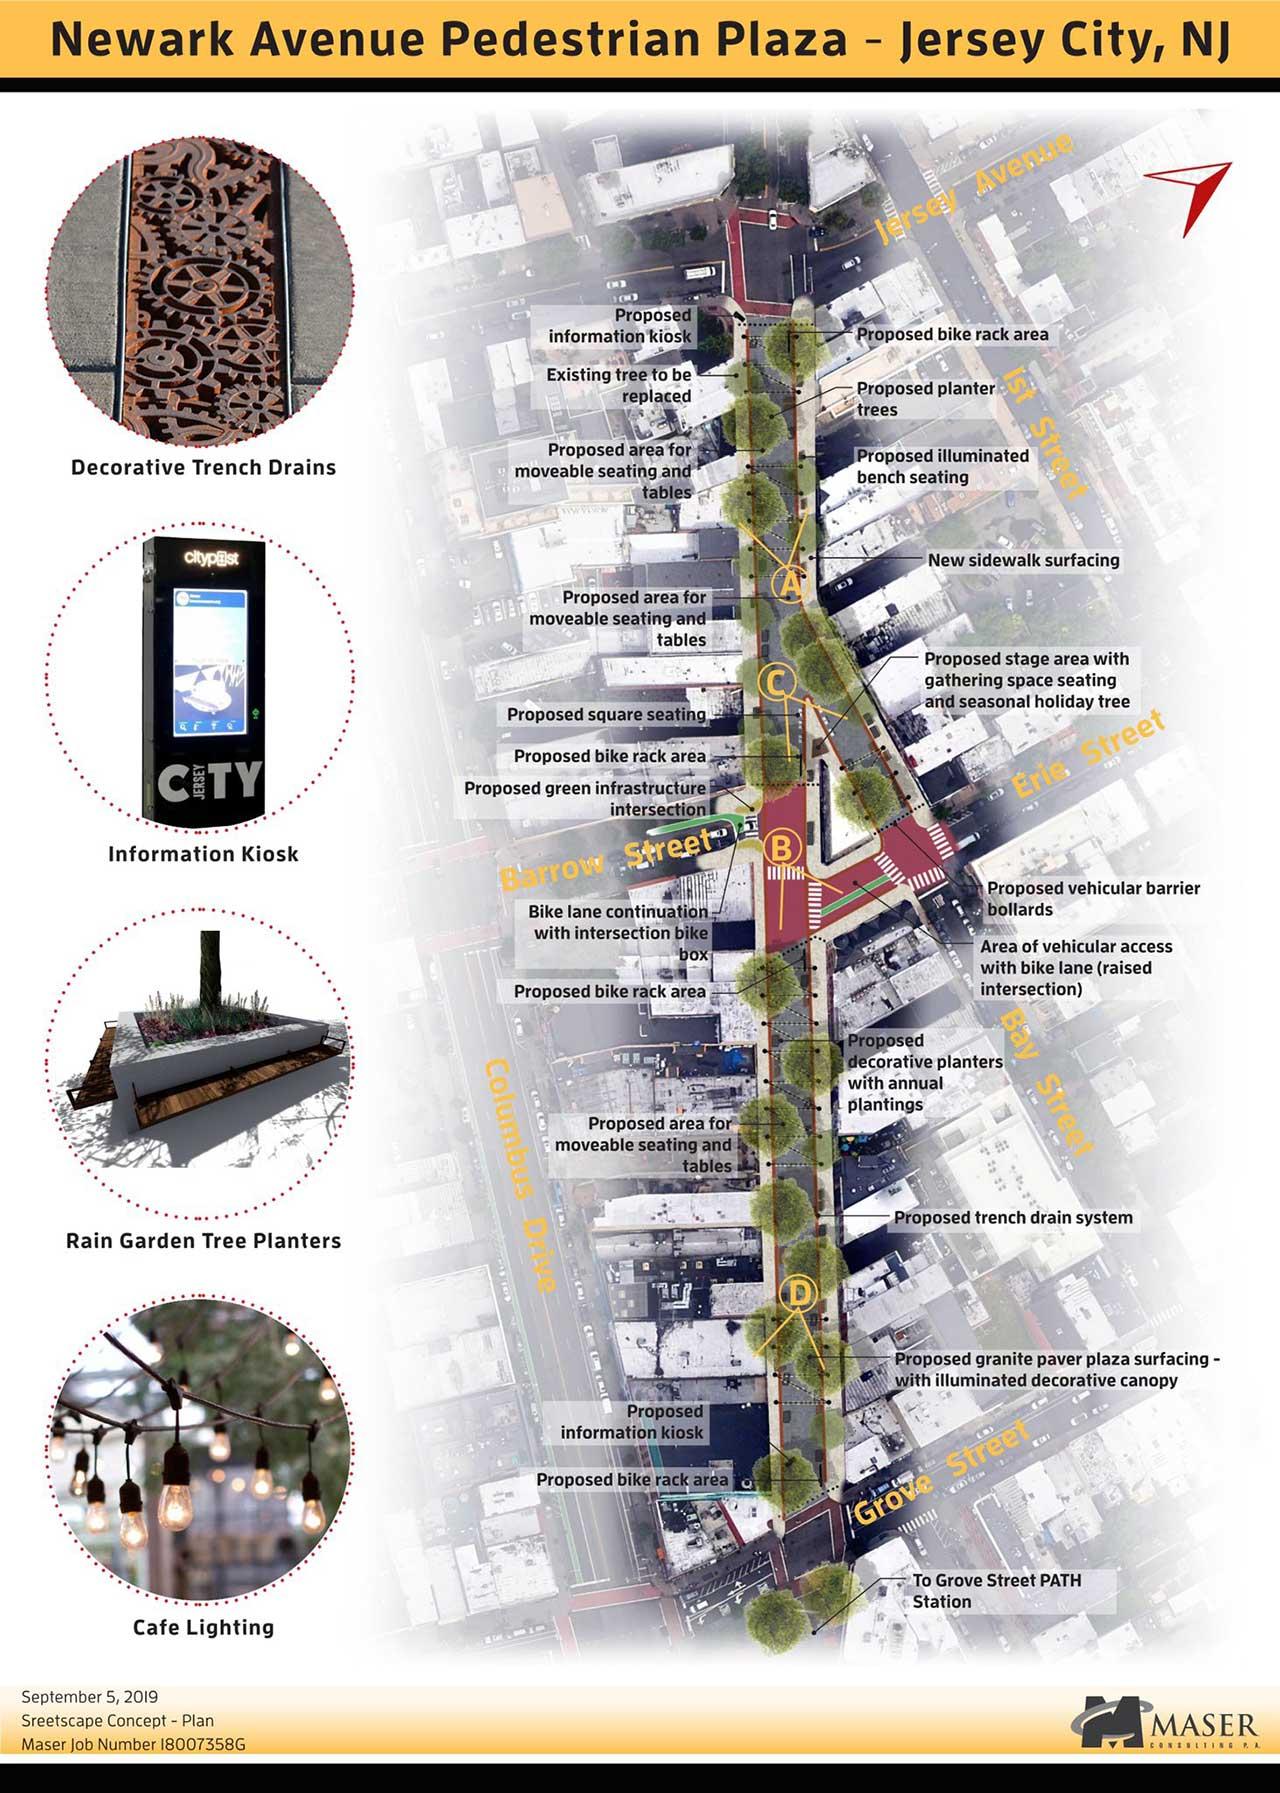 Site plans presented in 2019 for the Newark Avenue Pedestrian Plaza - Maser Consulting